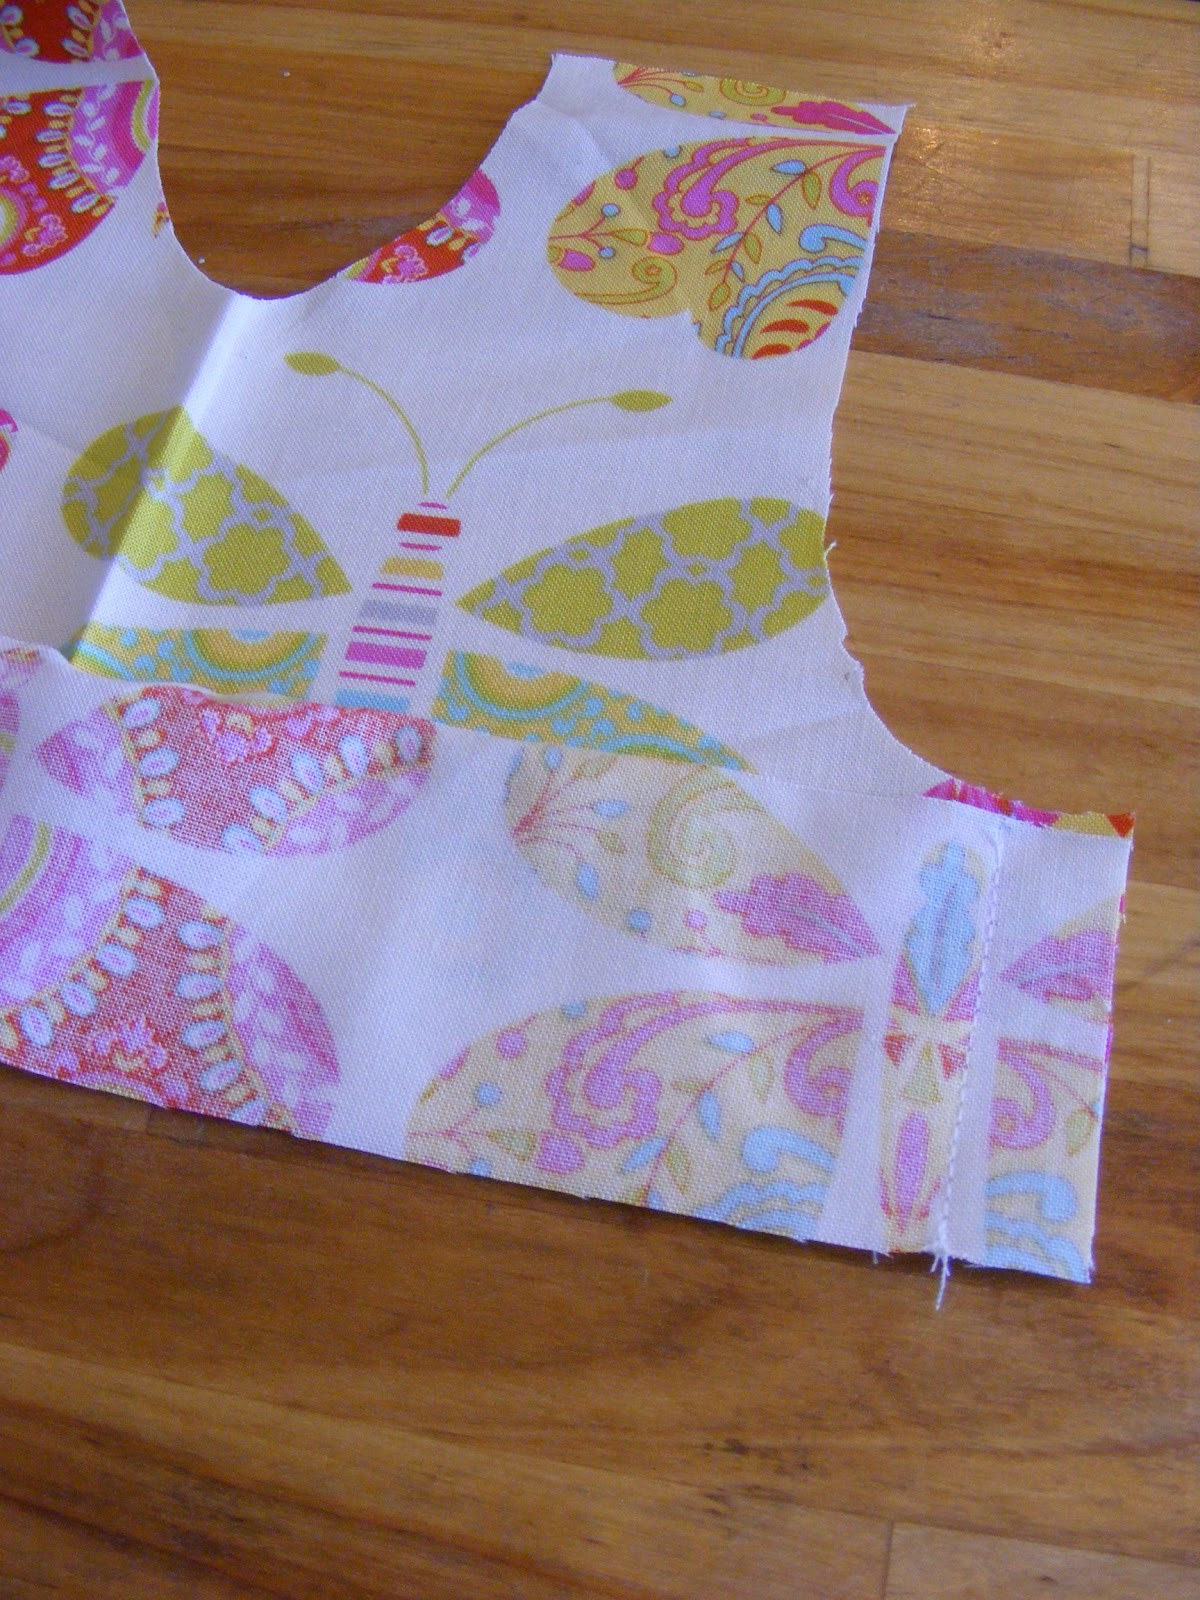 The complete guide to imperfect homemaking baby halter dress the complete guide to imperfect homemaking baby halter dress free pattern and tutorial baditri Gallery